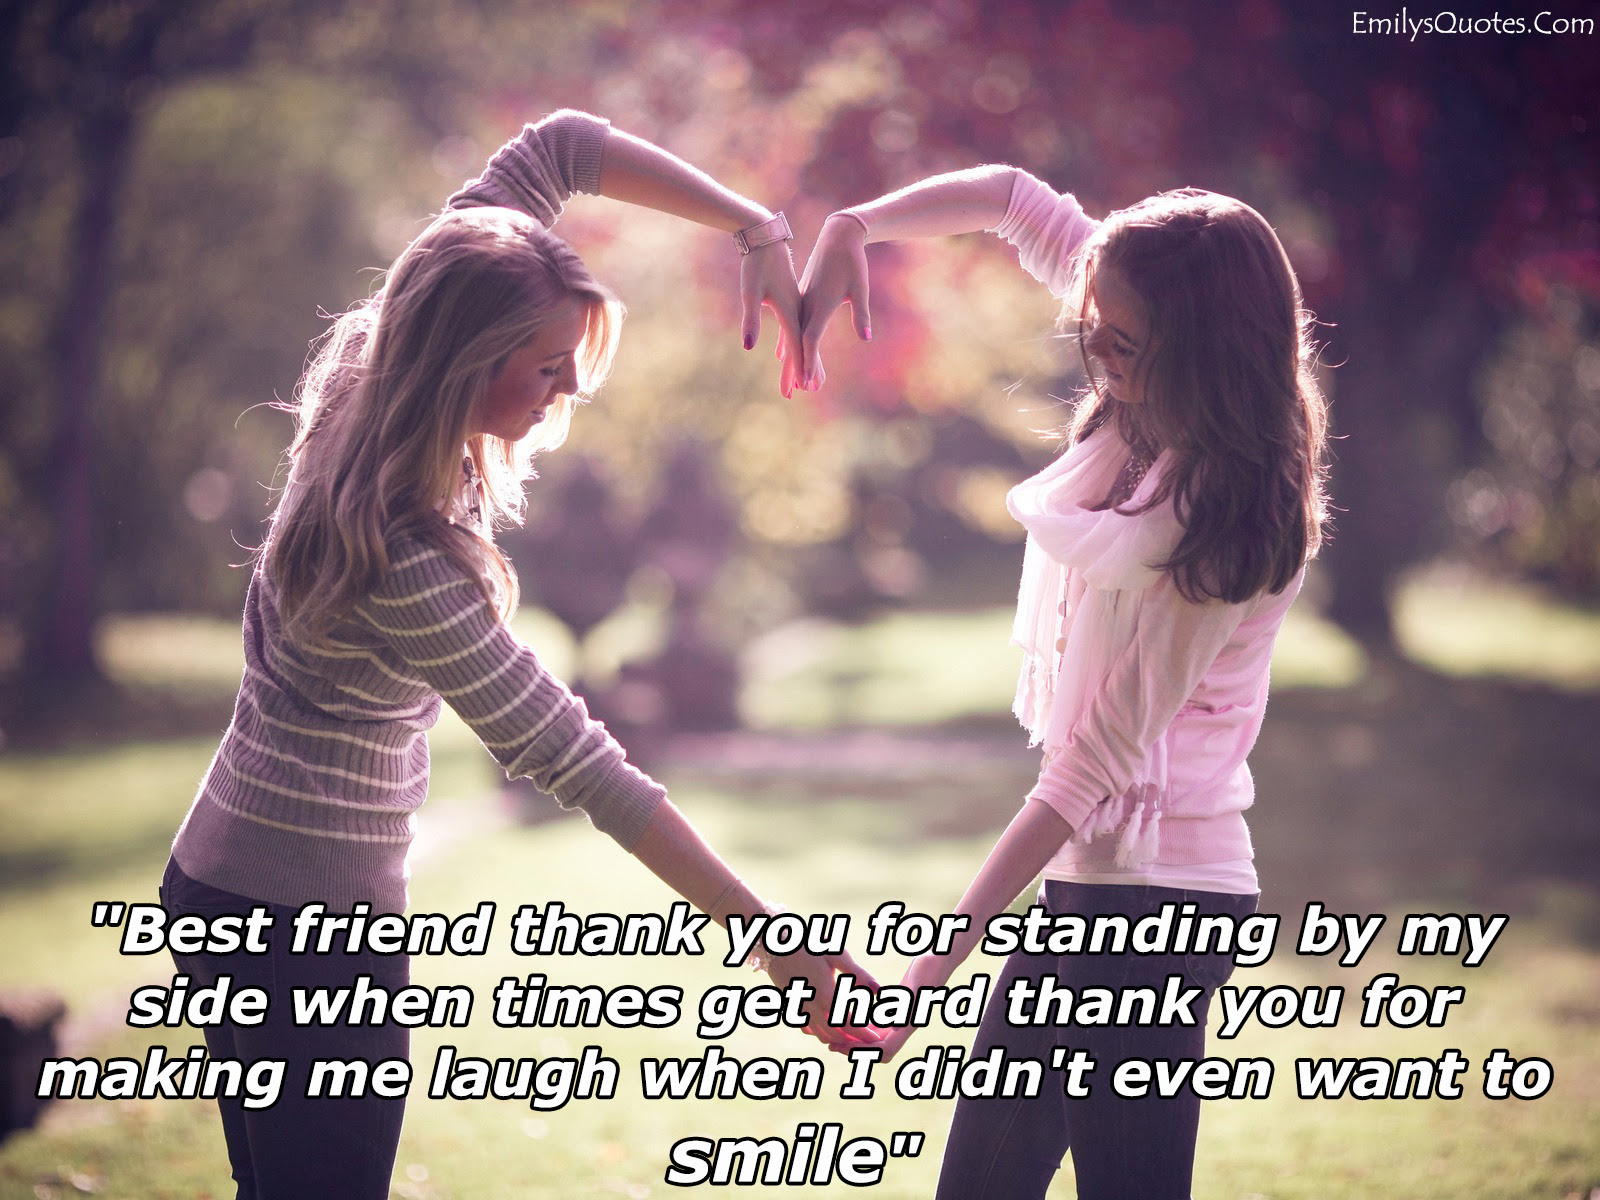 Best Friend Thank You For Standing By My Side When Times Get